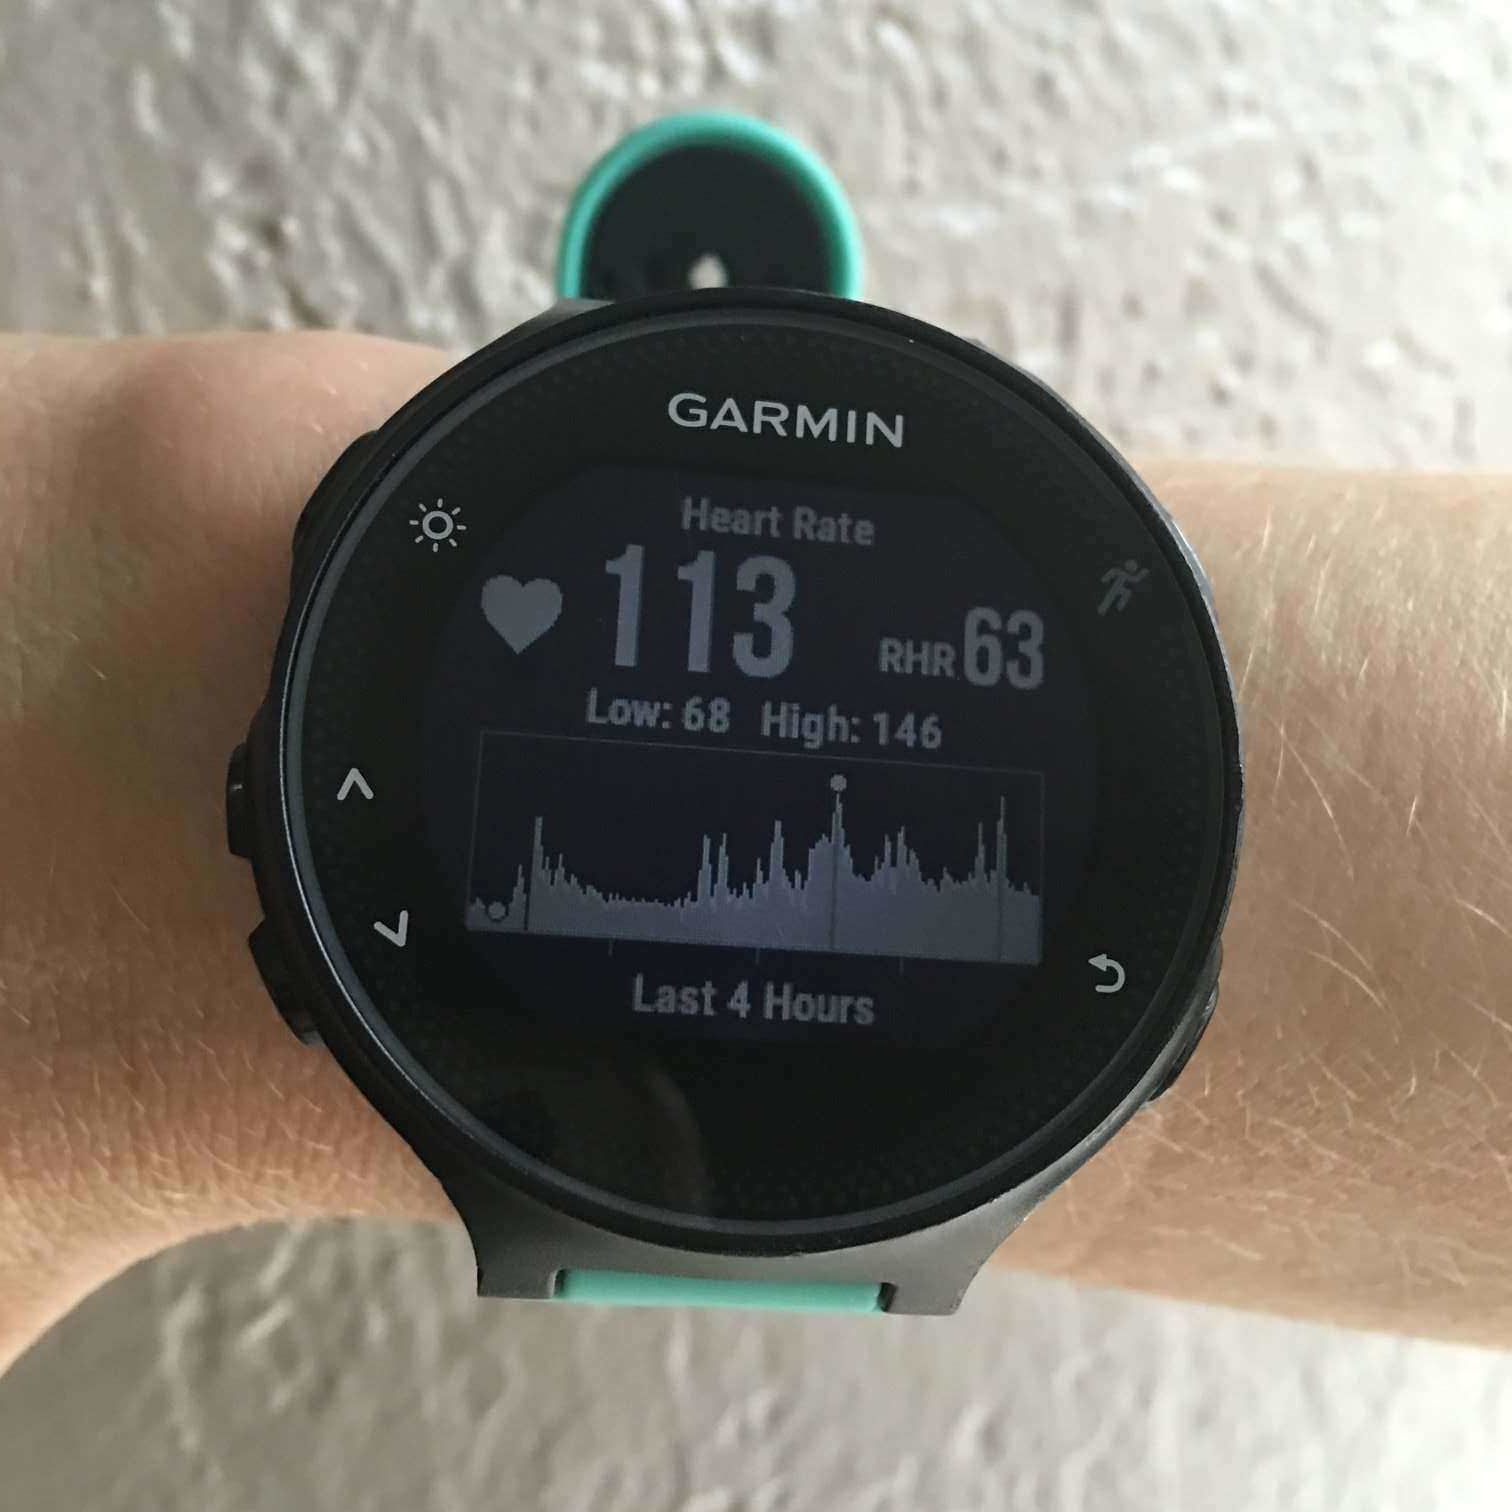 Runnergirl Training: Benefits of a Heart Rate Monitor